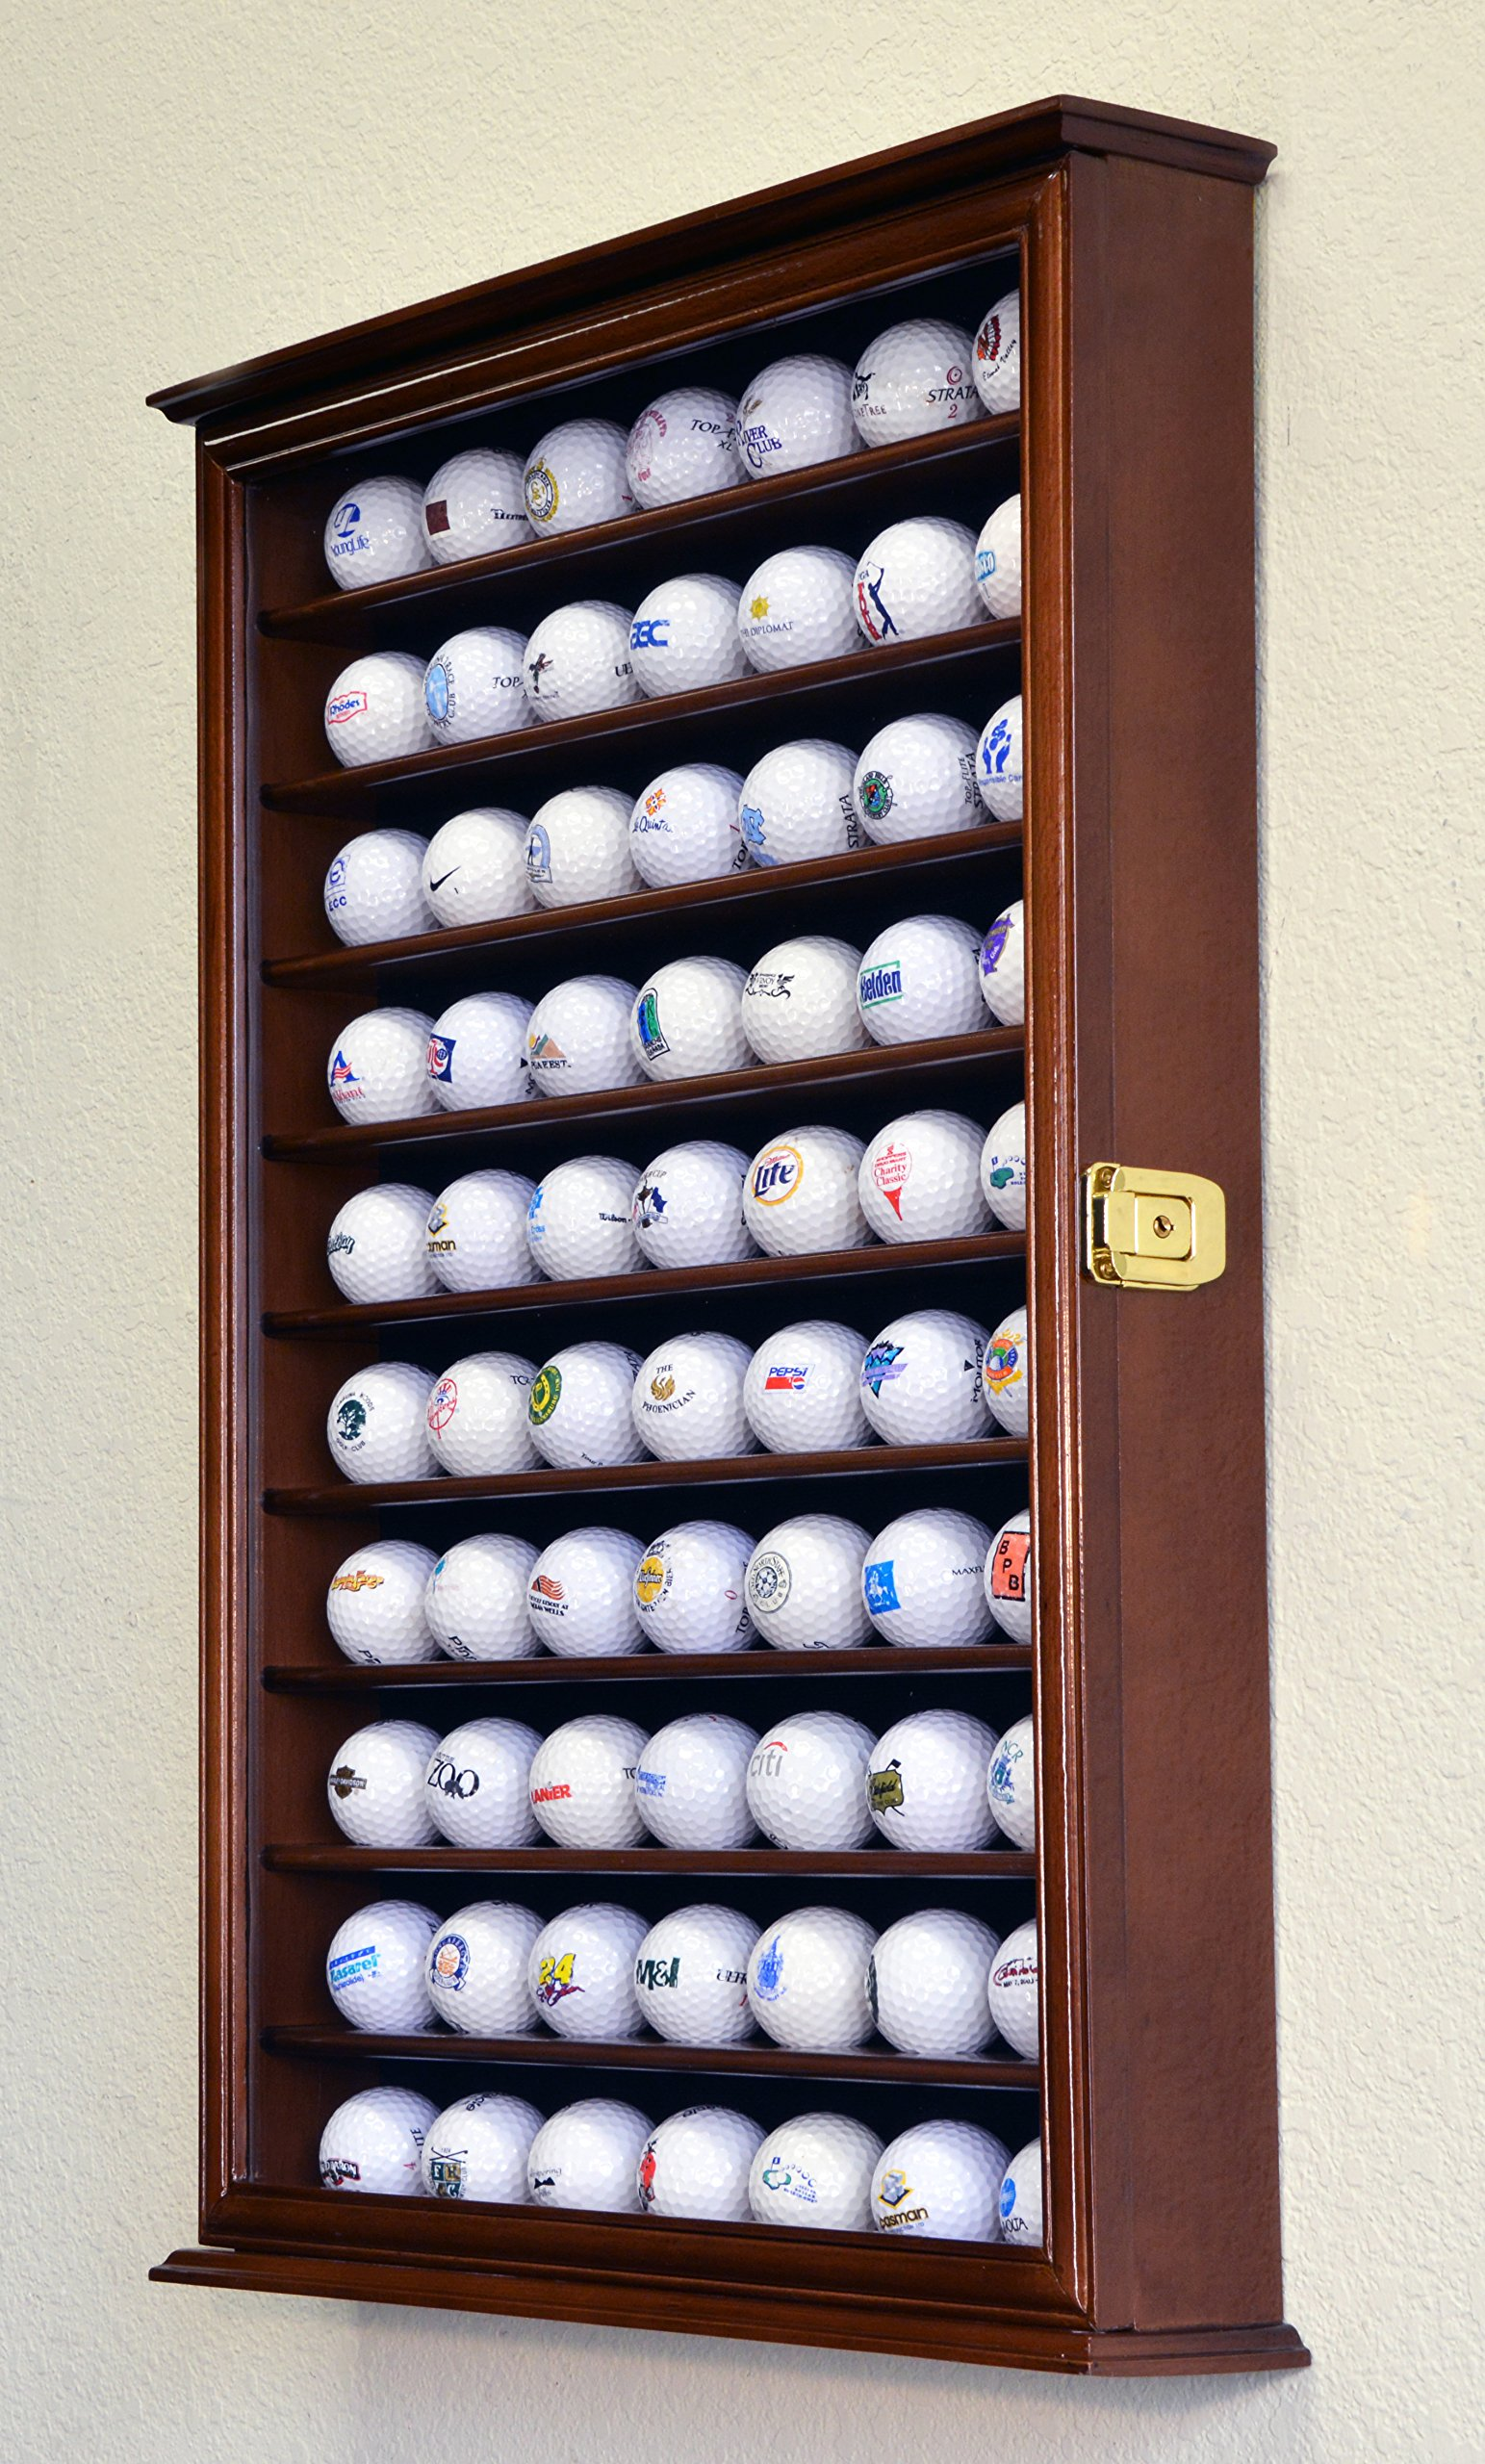 70 Golf Ball Display Case Cabinet Holder Wall Rack w/ UV Protection -Walnut by sfDisplay (Image #3)